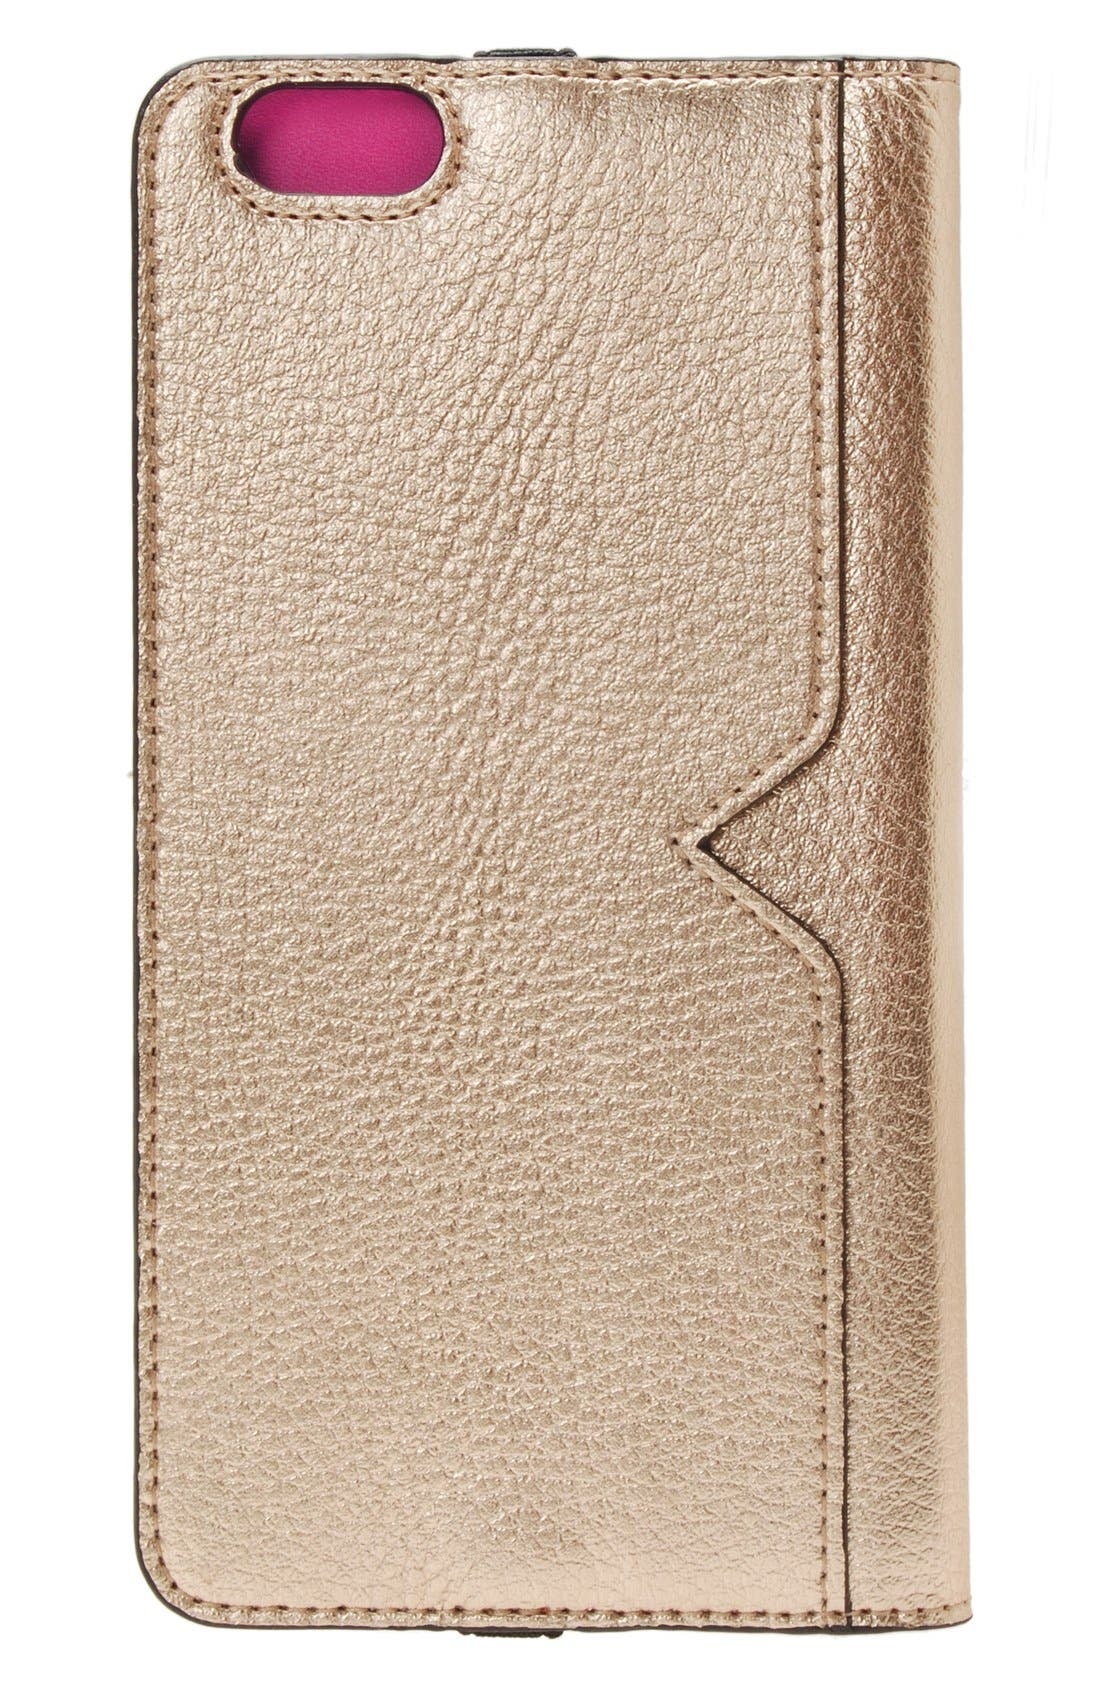 Alternate Image 2  - Mobileluxe iPhone 6 Plus/6s Plus Metallic Leather Wallet Case